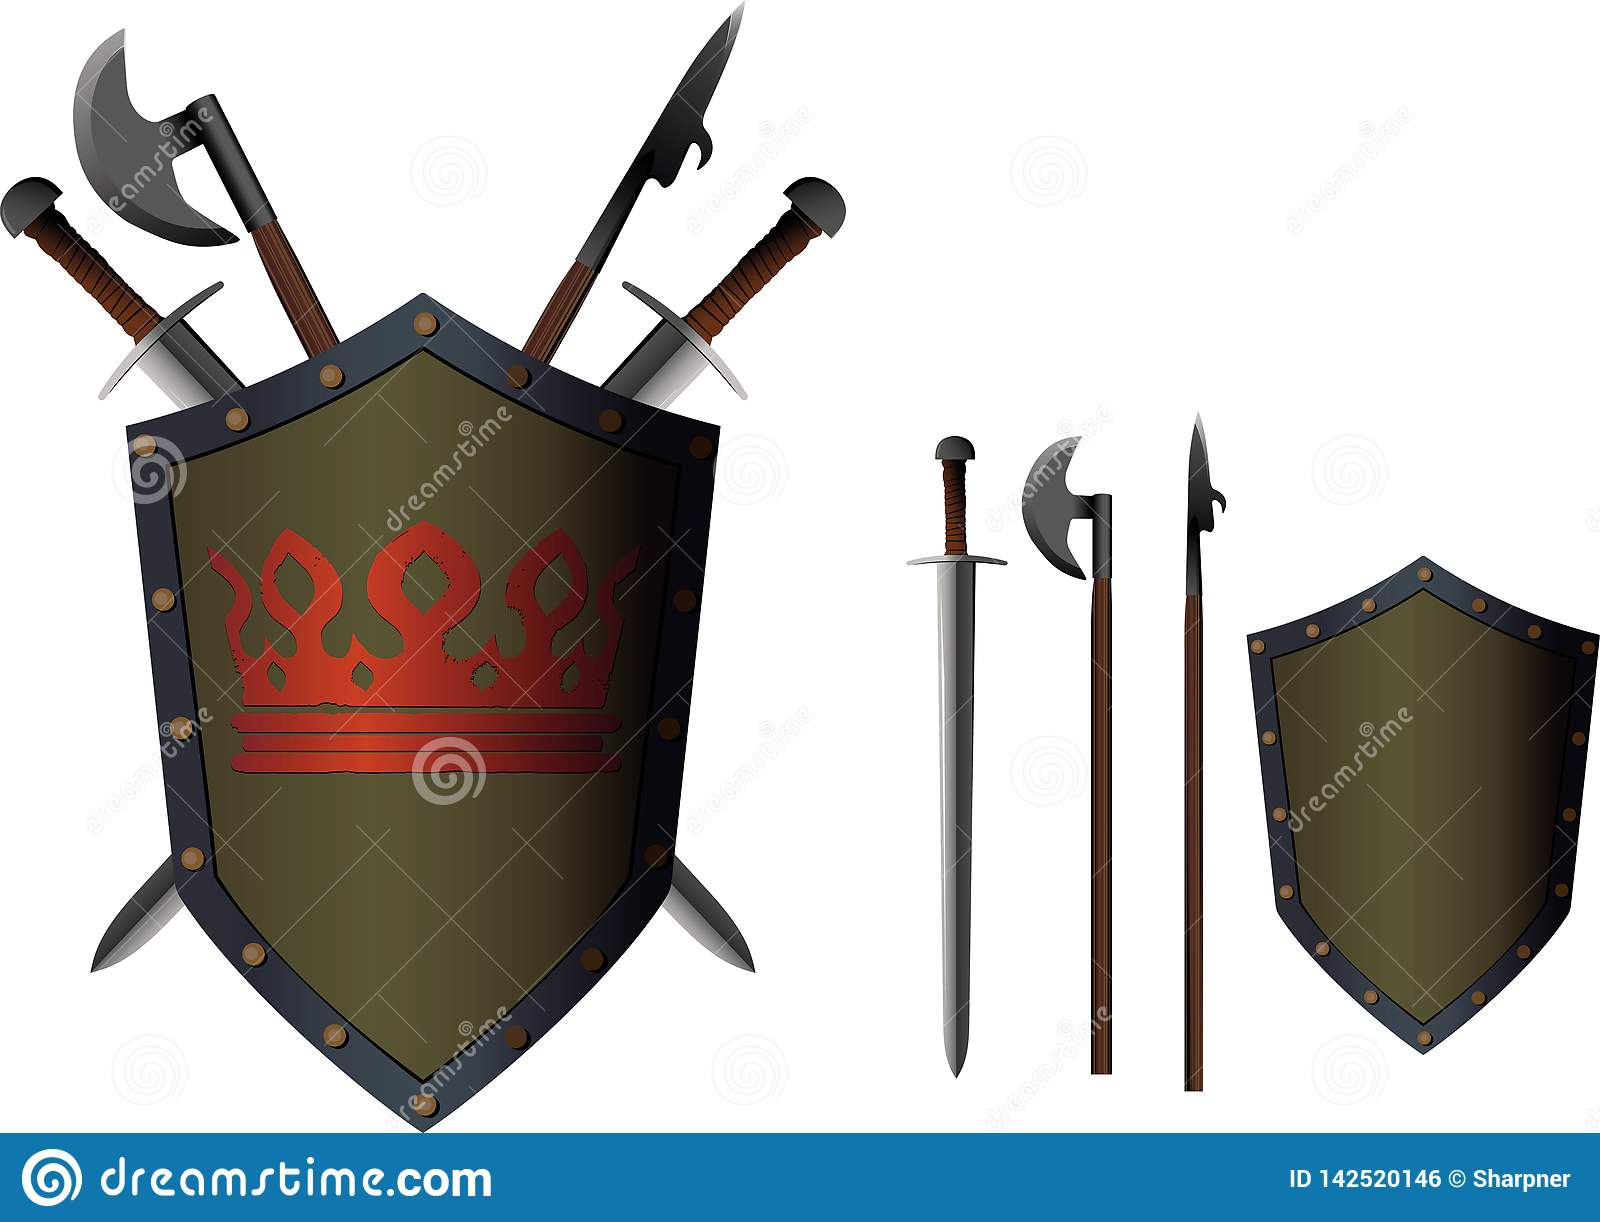 Crossed weapon shield stock vector  Illustration of icon - 142520146